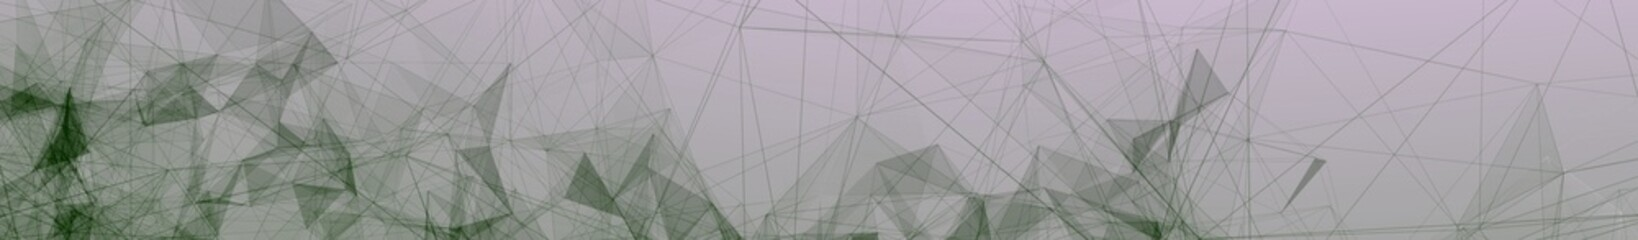 Green Trippy Abstract Plexus Polygon wireframe Shapes on Pink Gradient Background. Full Web Banner 3D Illustration.